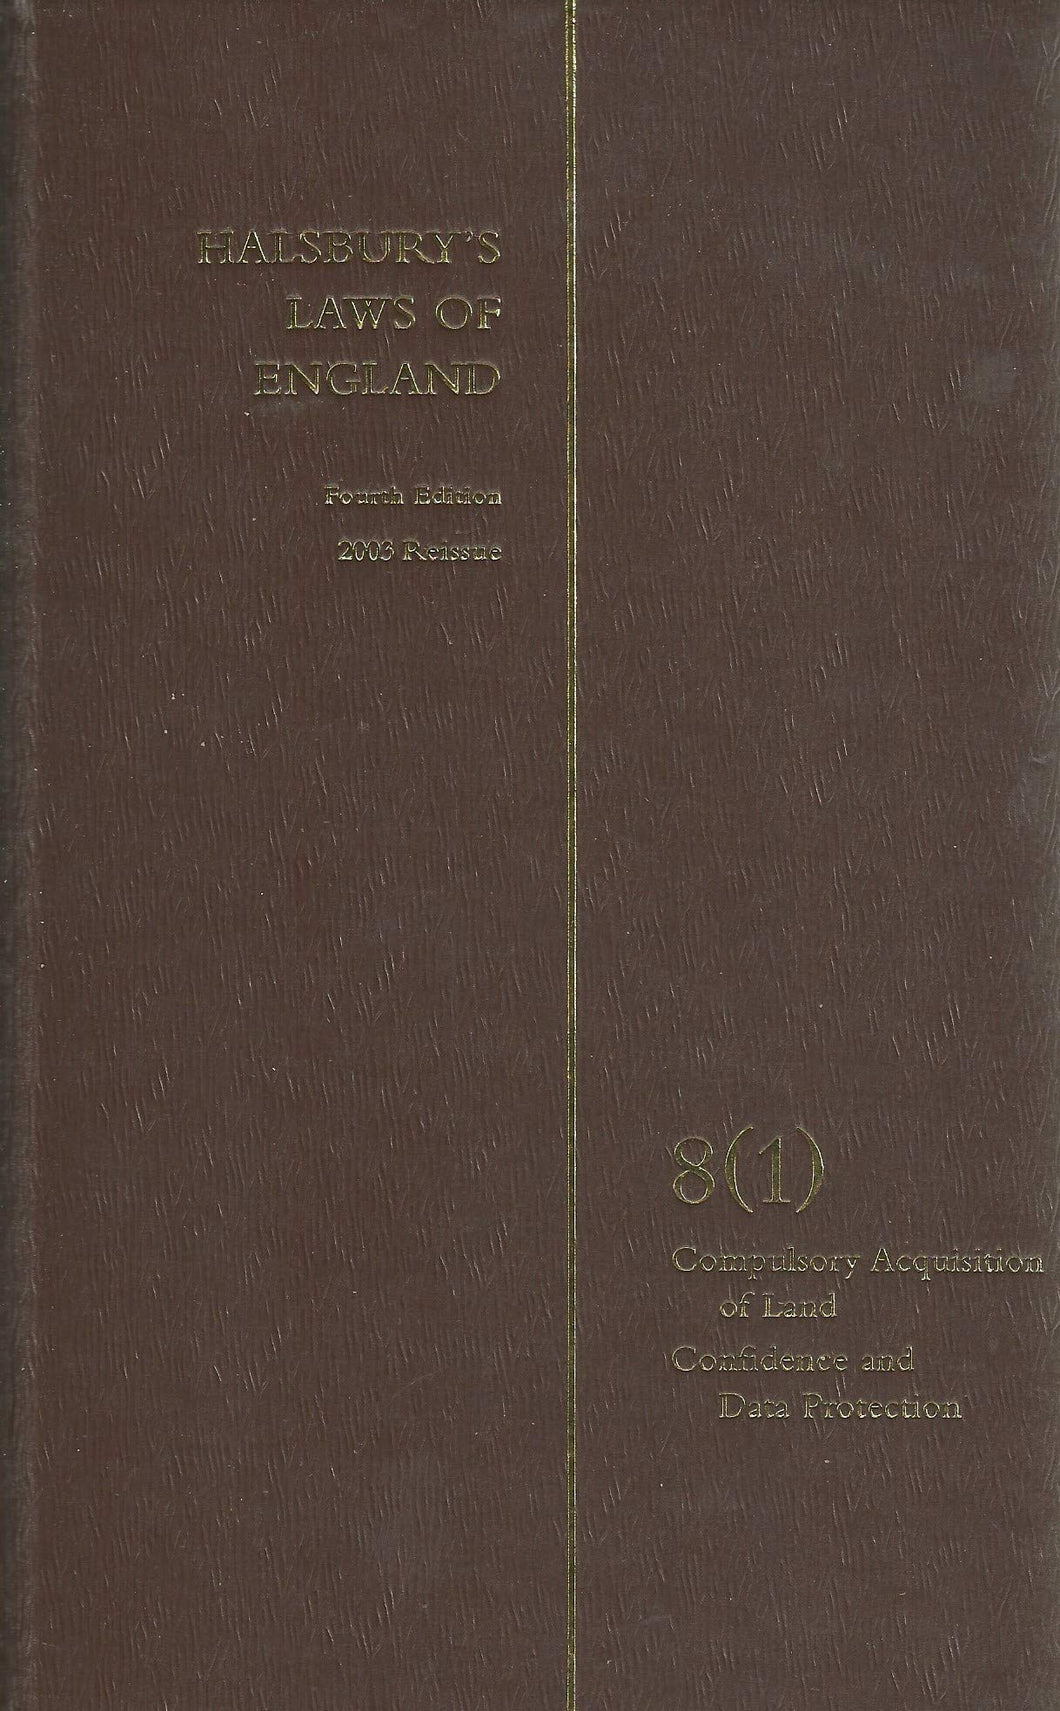 Halsbury's laws of England Vol 8(1) - Fourth Edition, 2003 Reissue